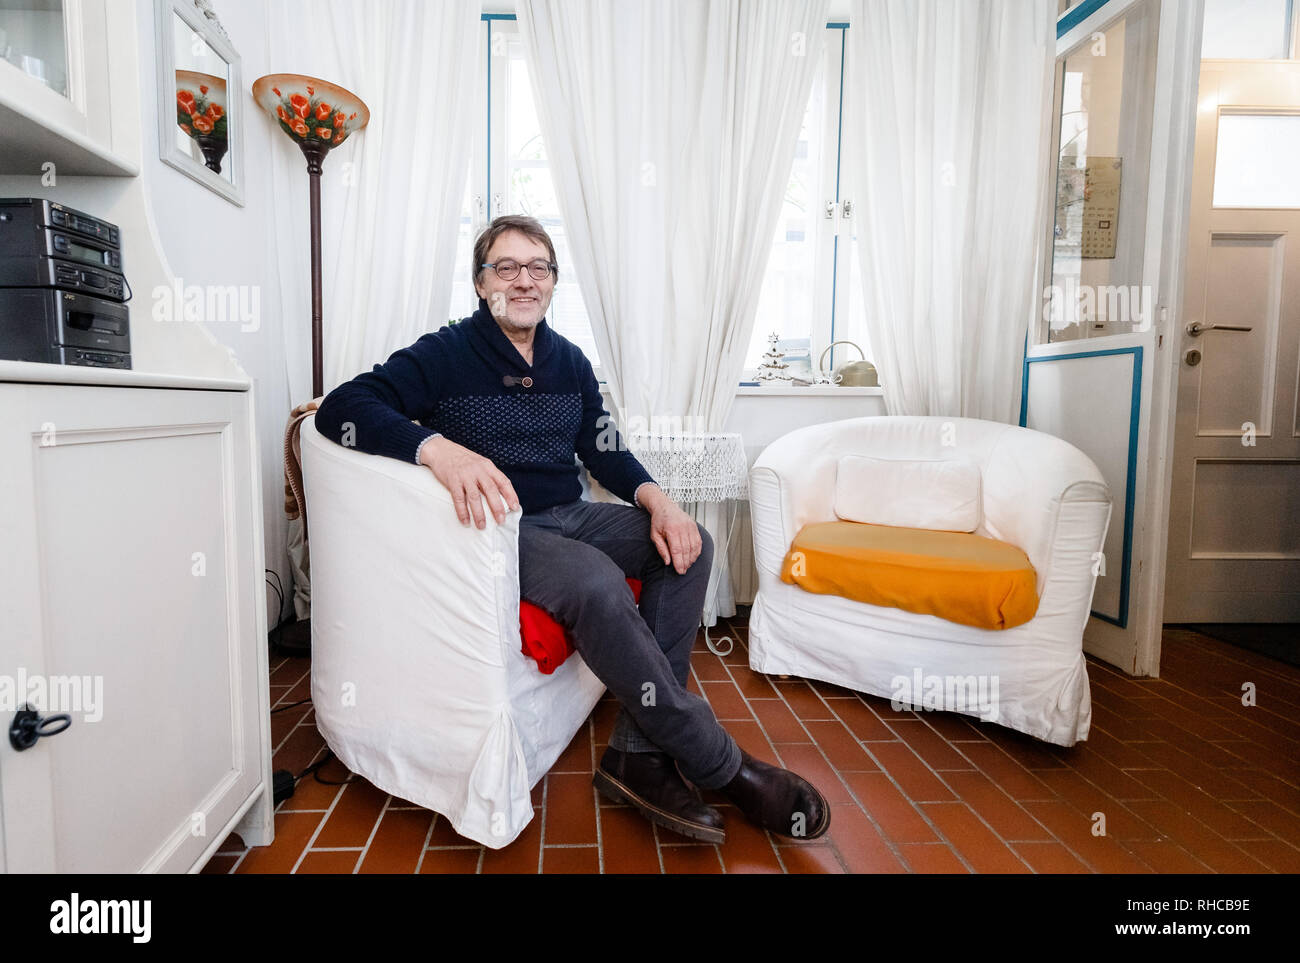 01 February 2019, Schleswig-Holstein, Lübeck: Holiday home owner Wolfgang Seitz sits in his apartment in a historic old building in the centre of Lübeck. Soon the picturesque gang houses in Lübeck will no longer be allowed to be rented to tourists. The homeowners want to sue against the usage ban. They threaten to sell their cottages as second homes to Scandinavians, for example. Photo: Markus Scholz/dpa Stock Photo